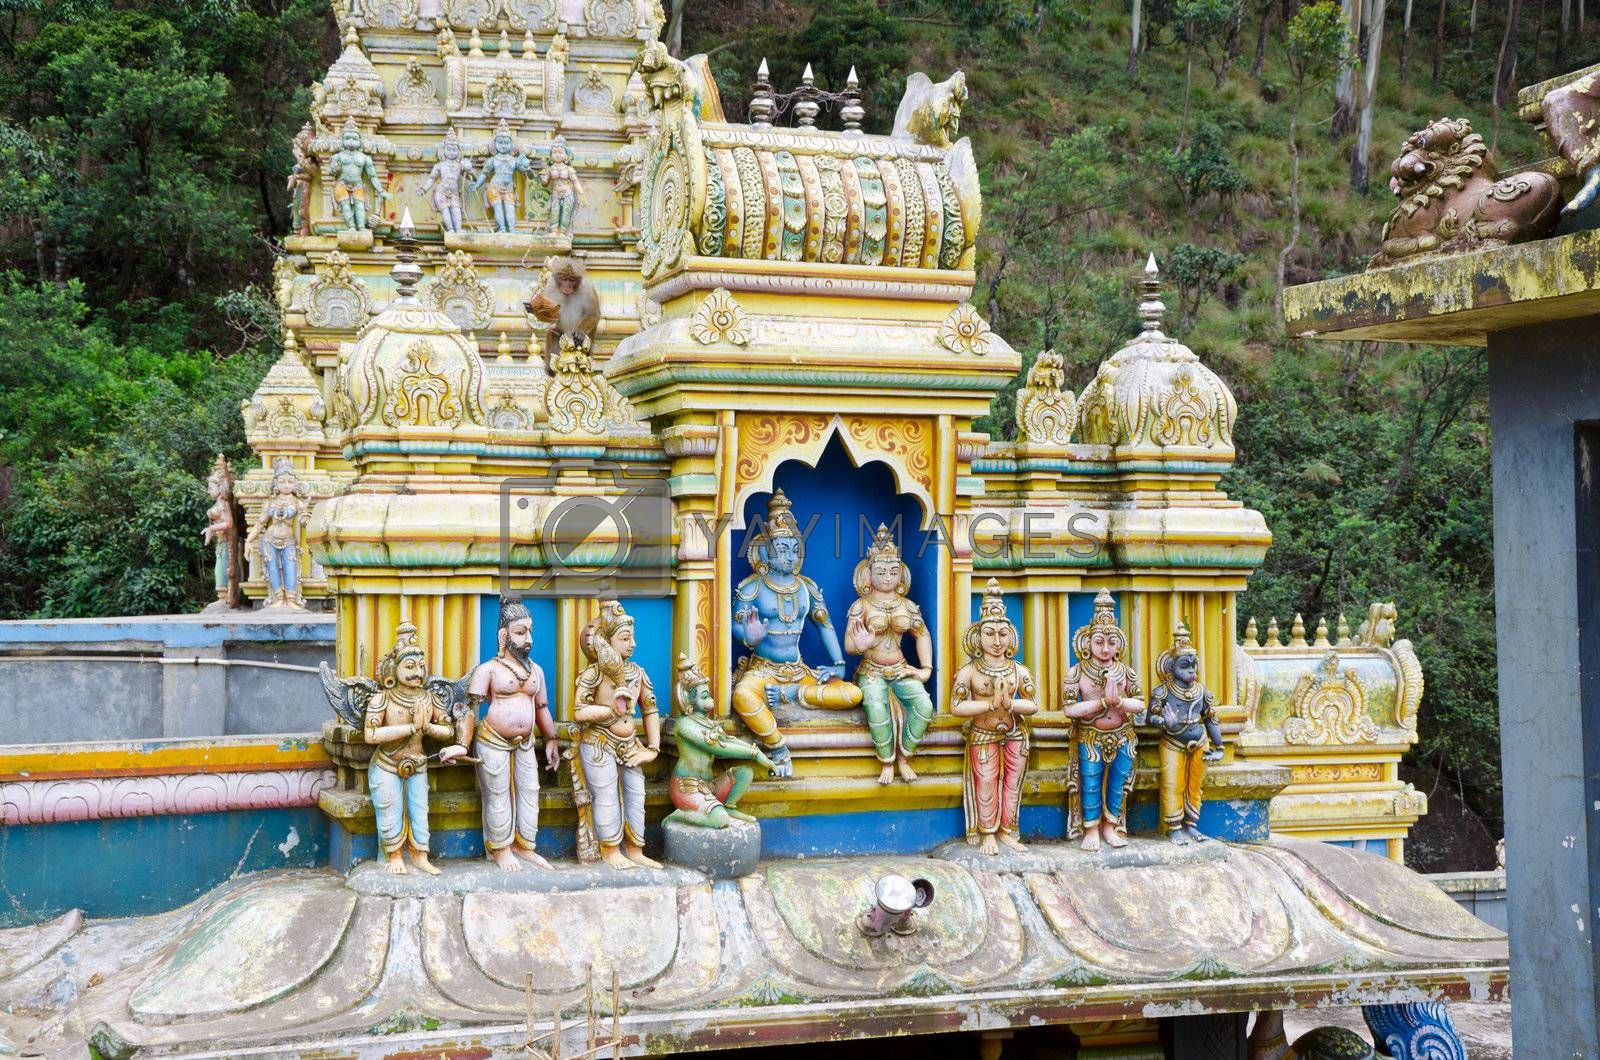 MOUNTAINS OF SRI LANKA DECEMBER 8. external decoration of a Hindu temple in the mountains of Sri Lanka, december 8, 2011.